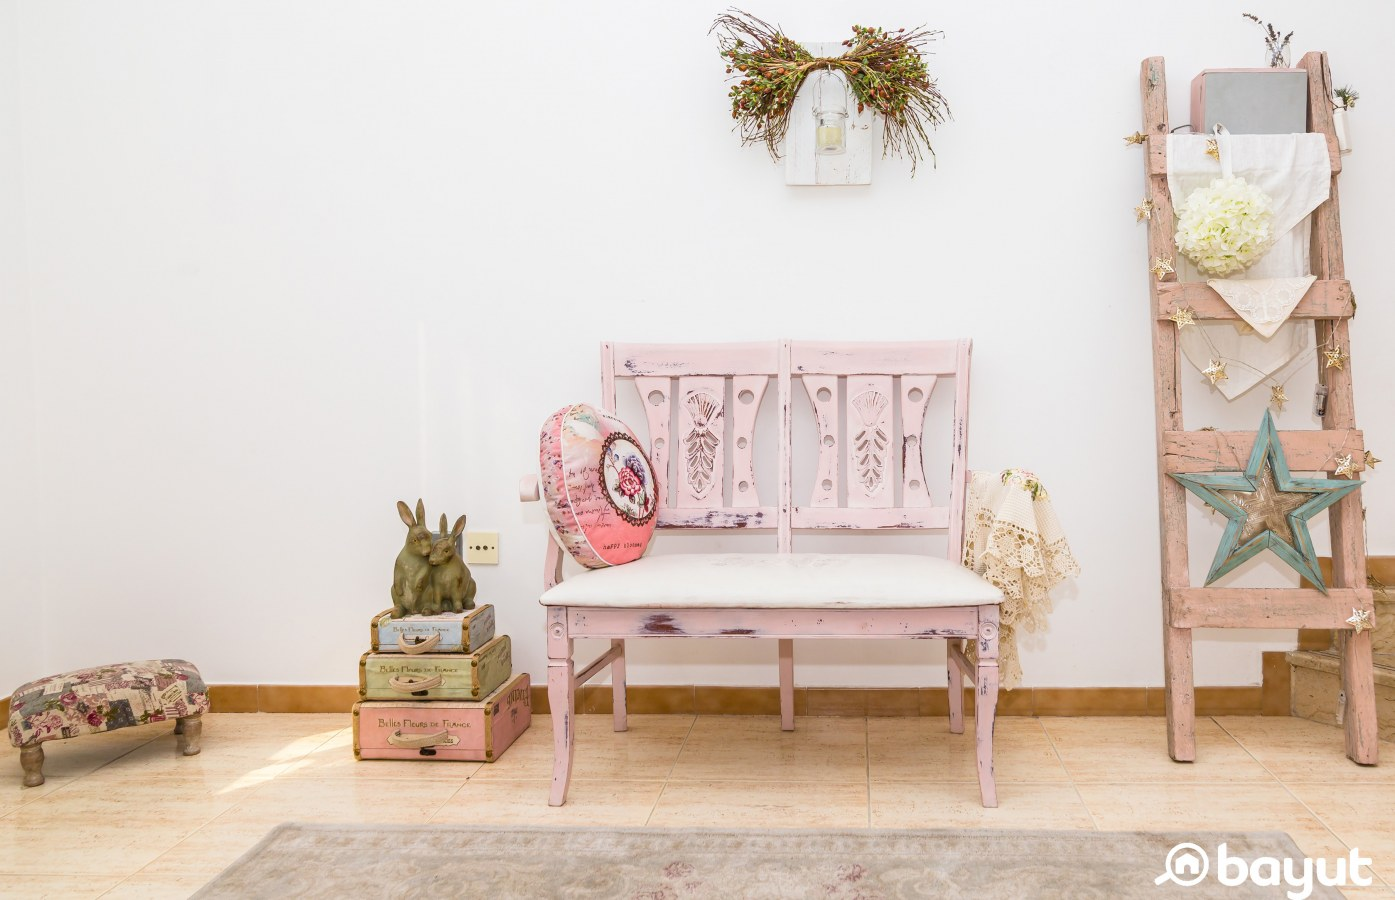 An upcycled bench